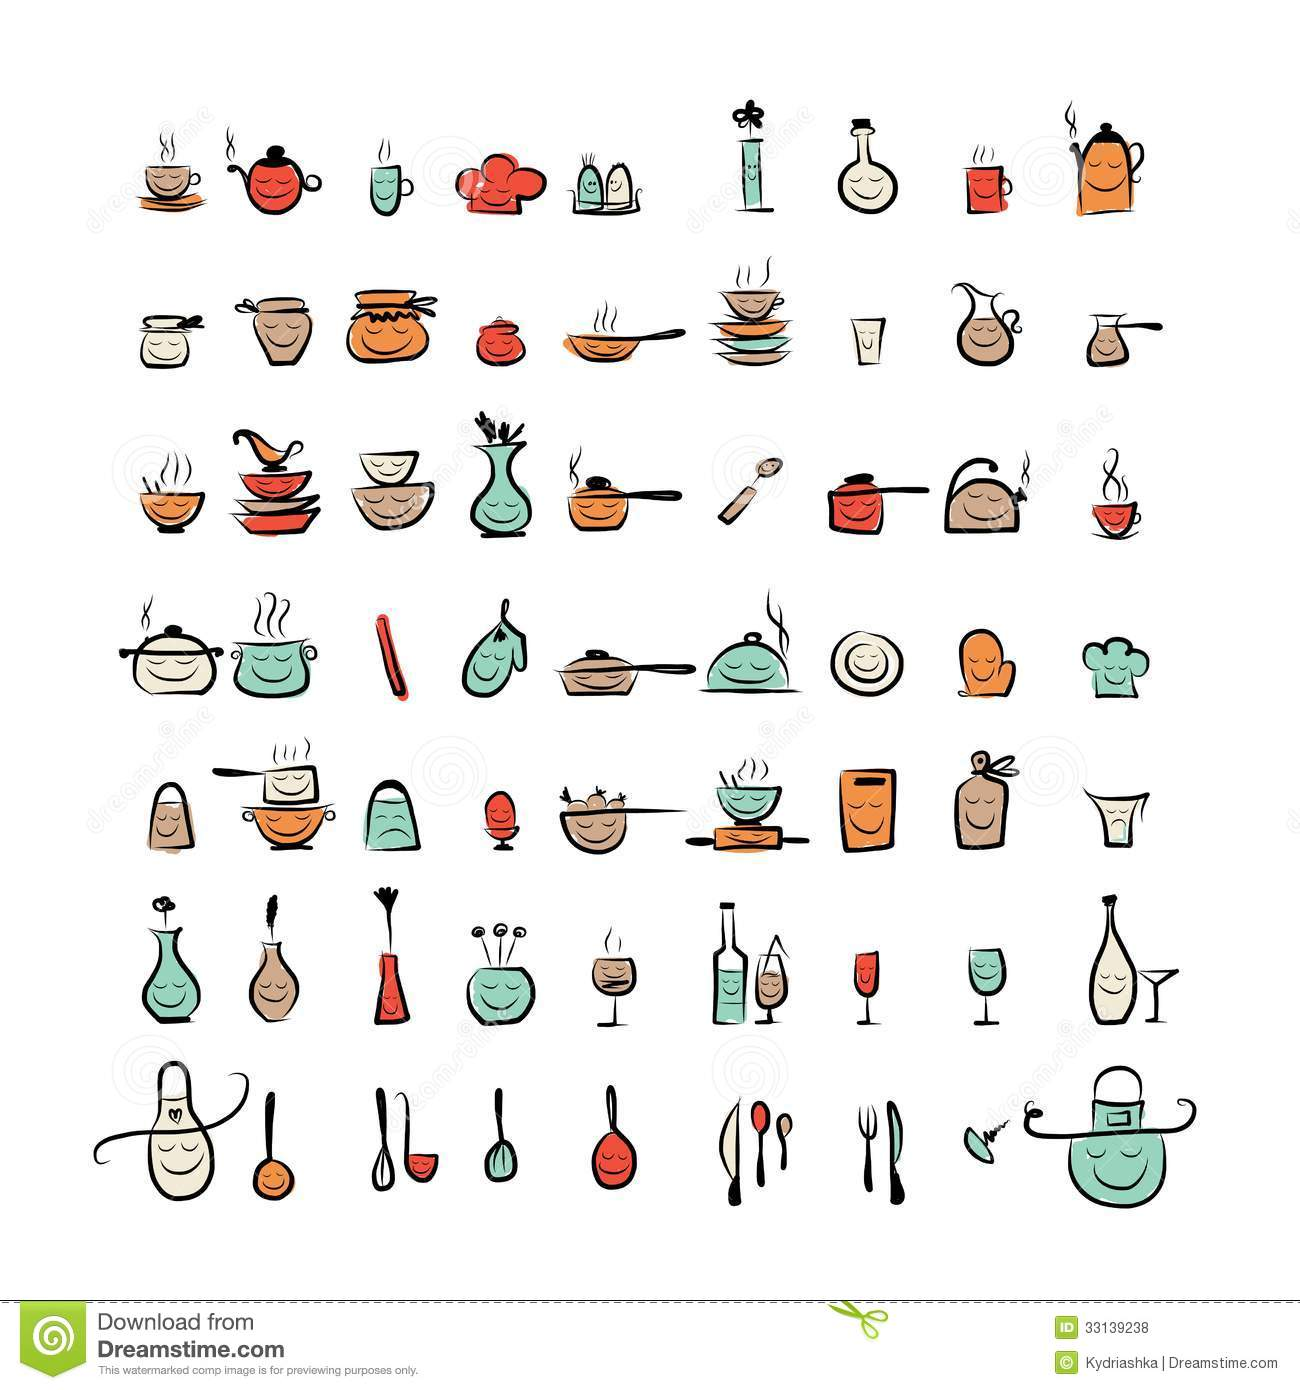 Cooking Utensils Drawing